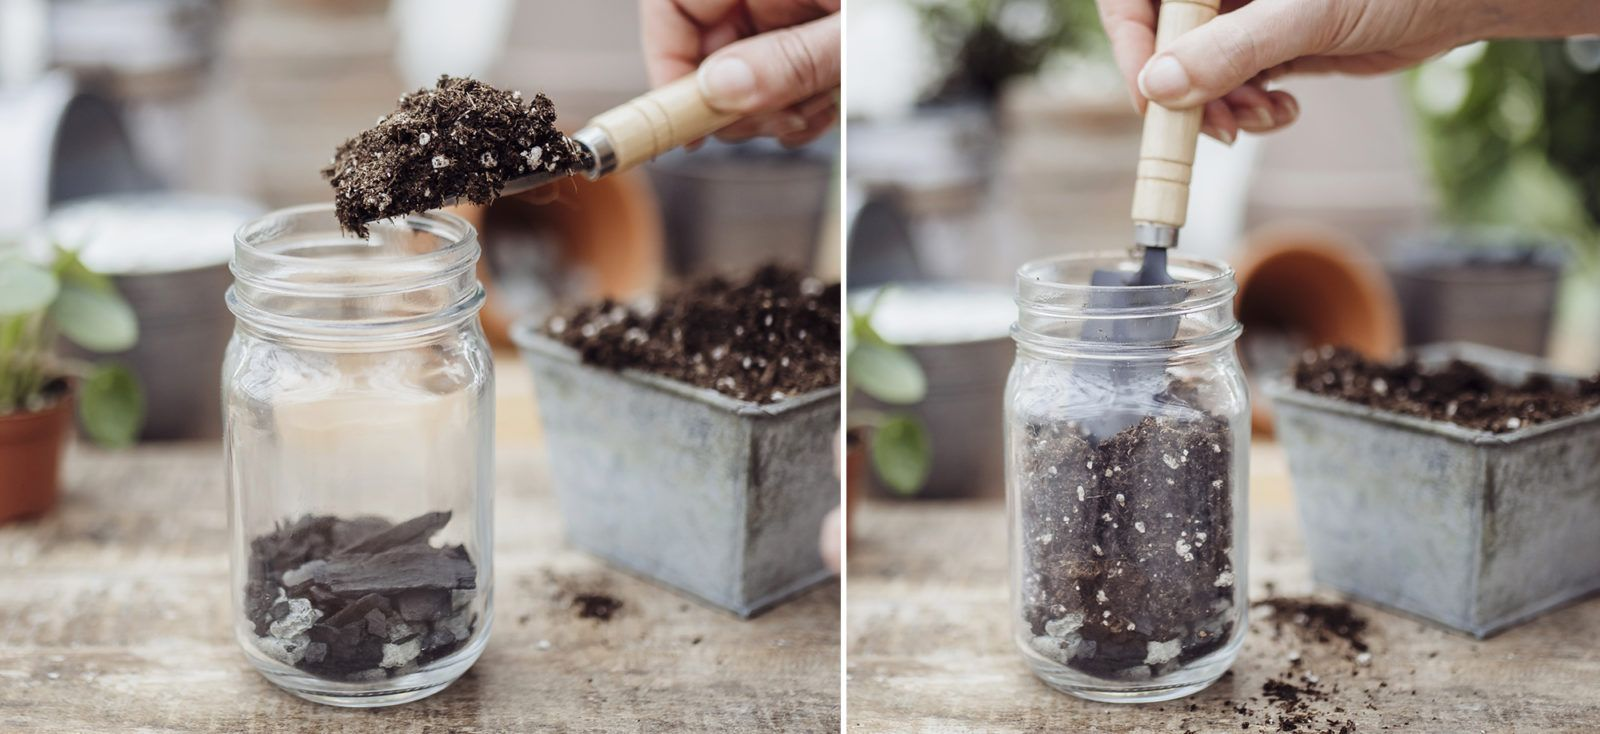 How to pot a houseplant without drainage with images